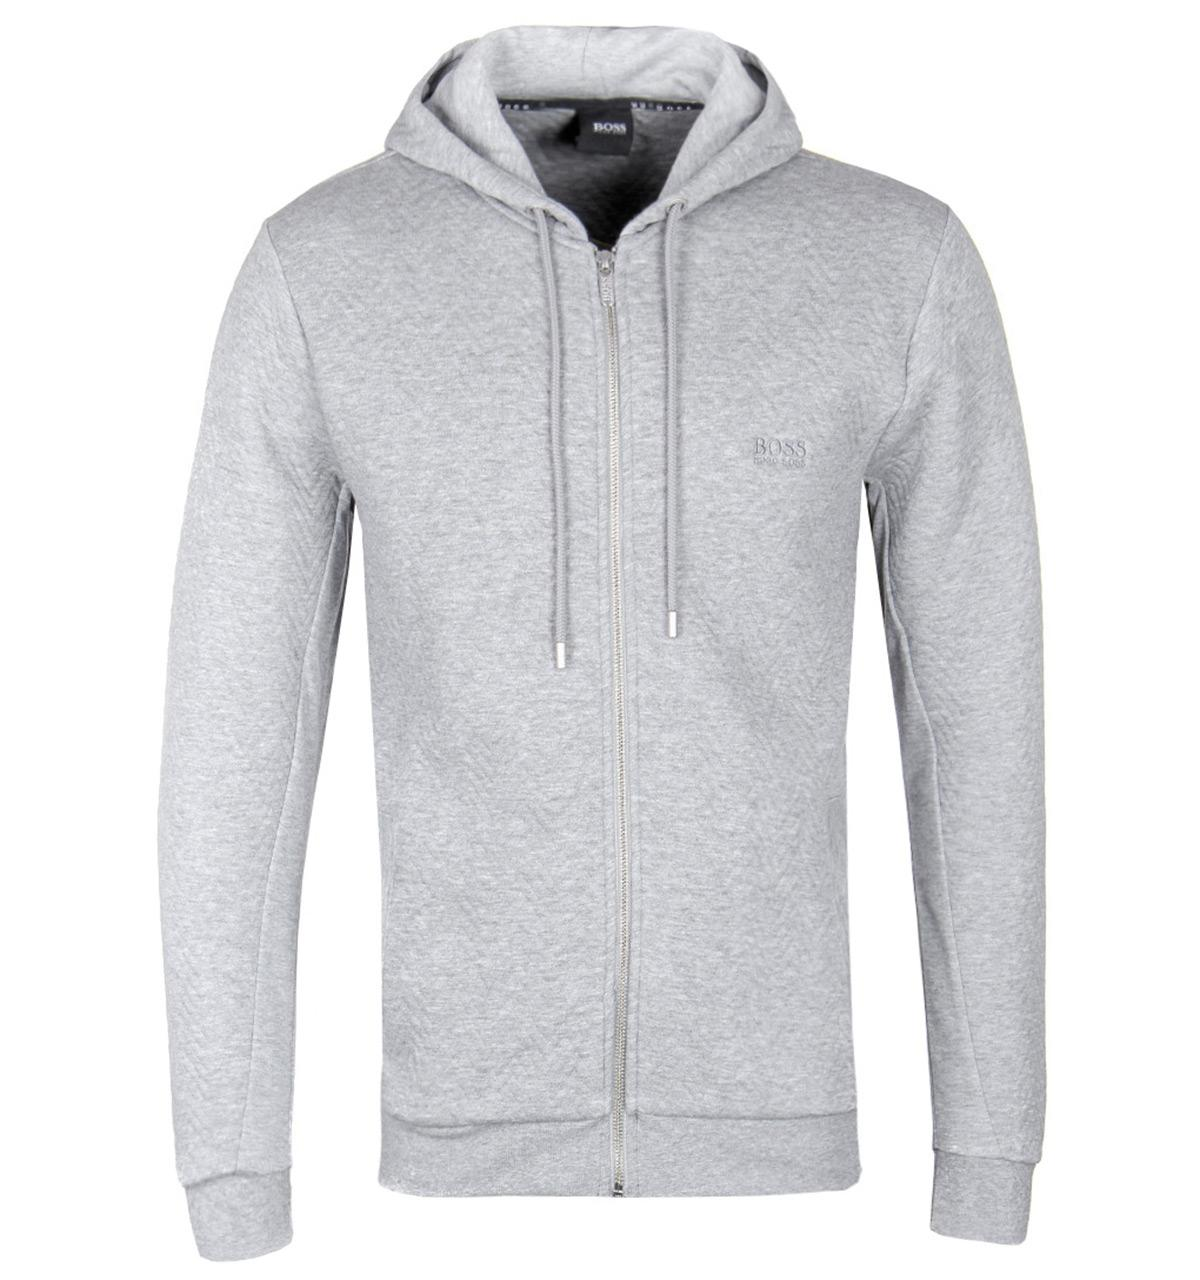 67ae37802a9 Lyst - BOSS by Hugo Boss Light Grey Quilted Contemp Hoodie in Gray ...